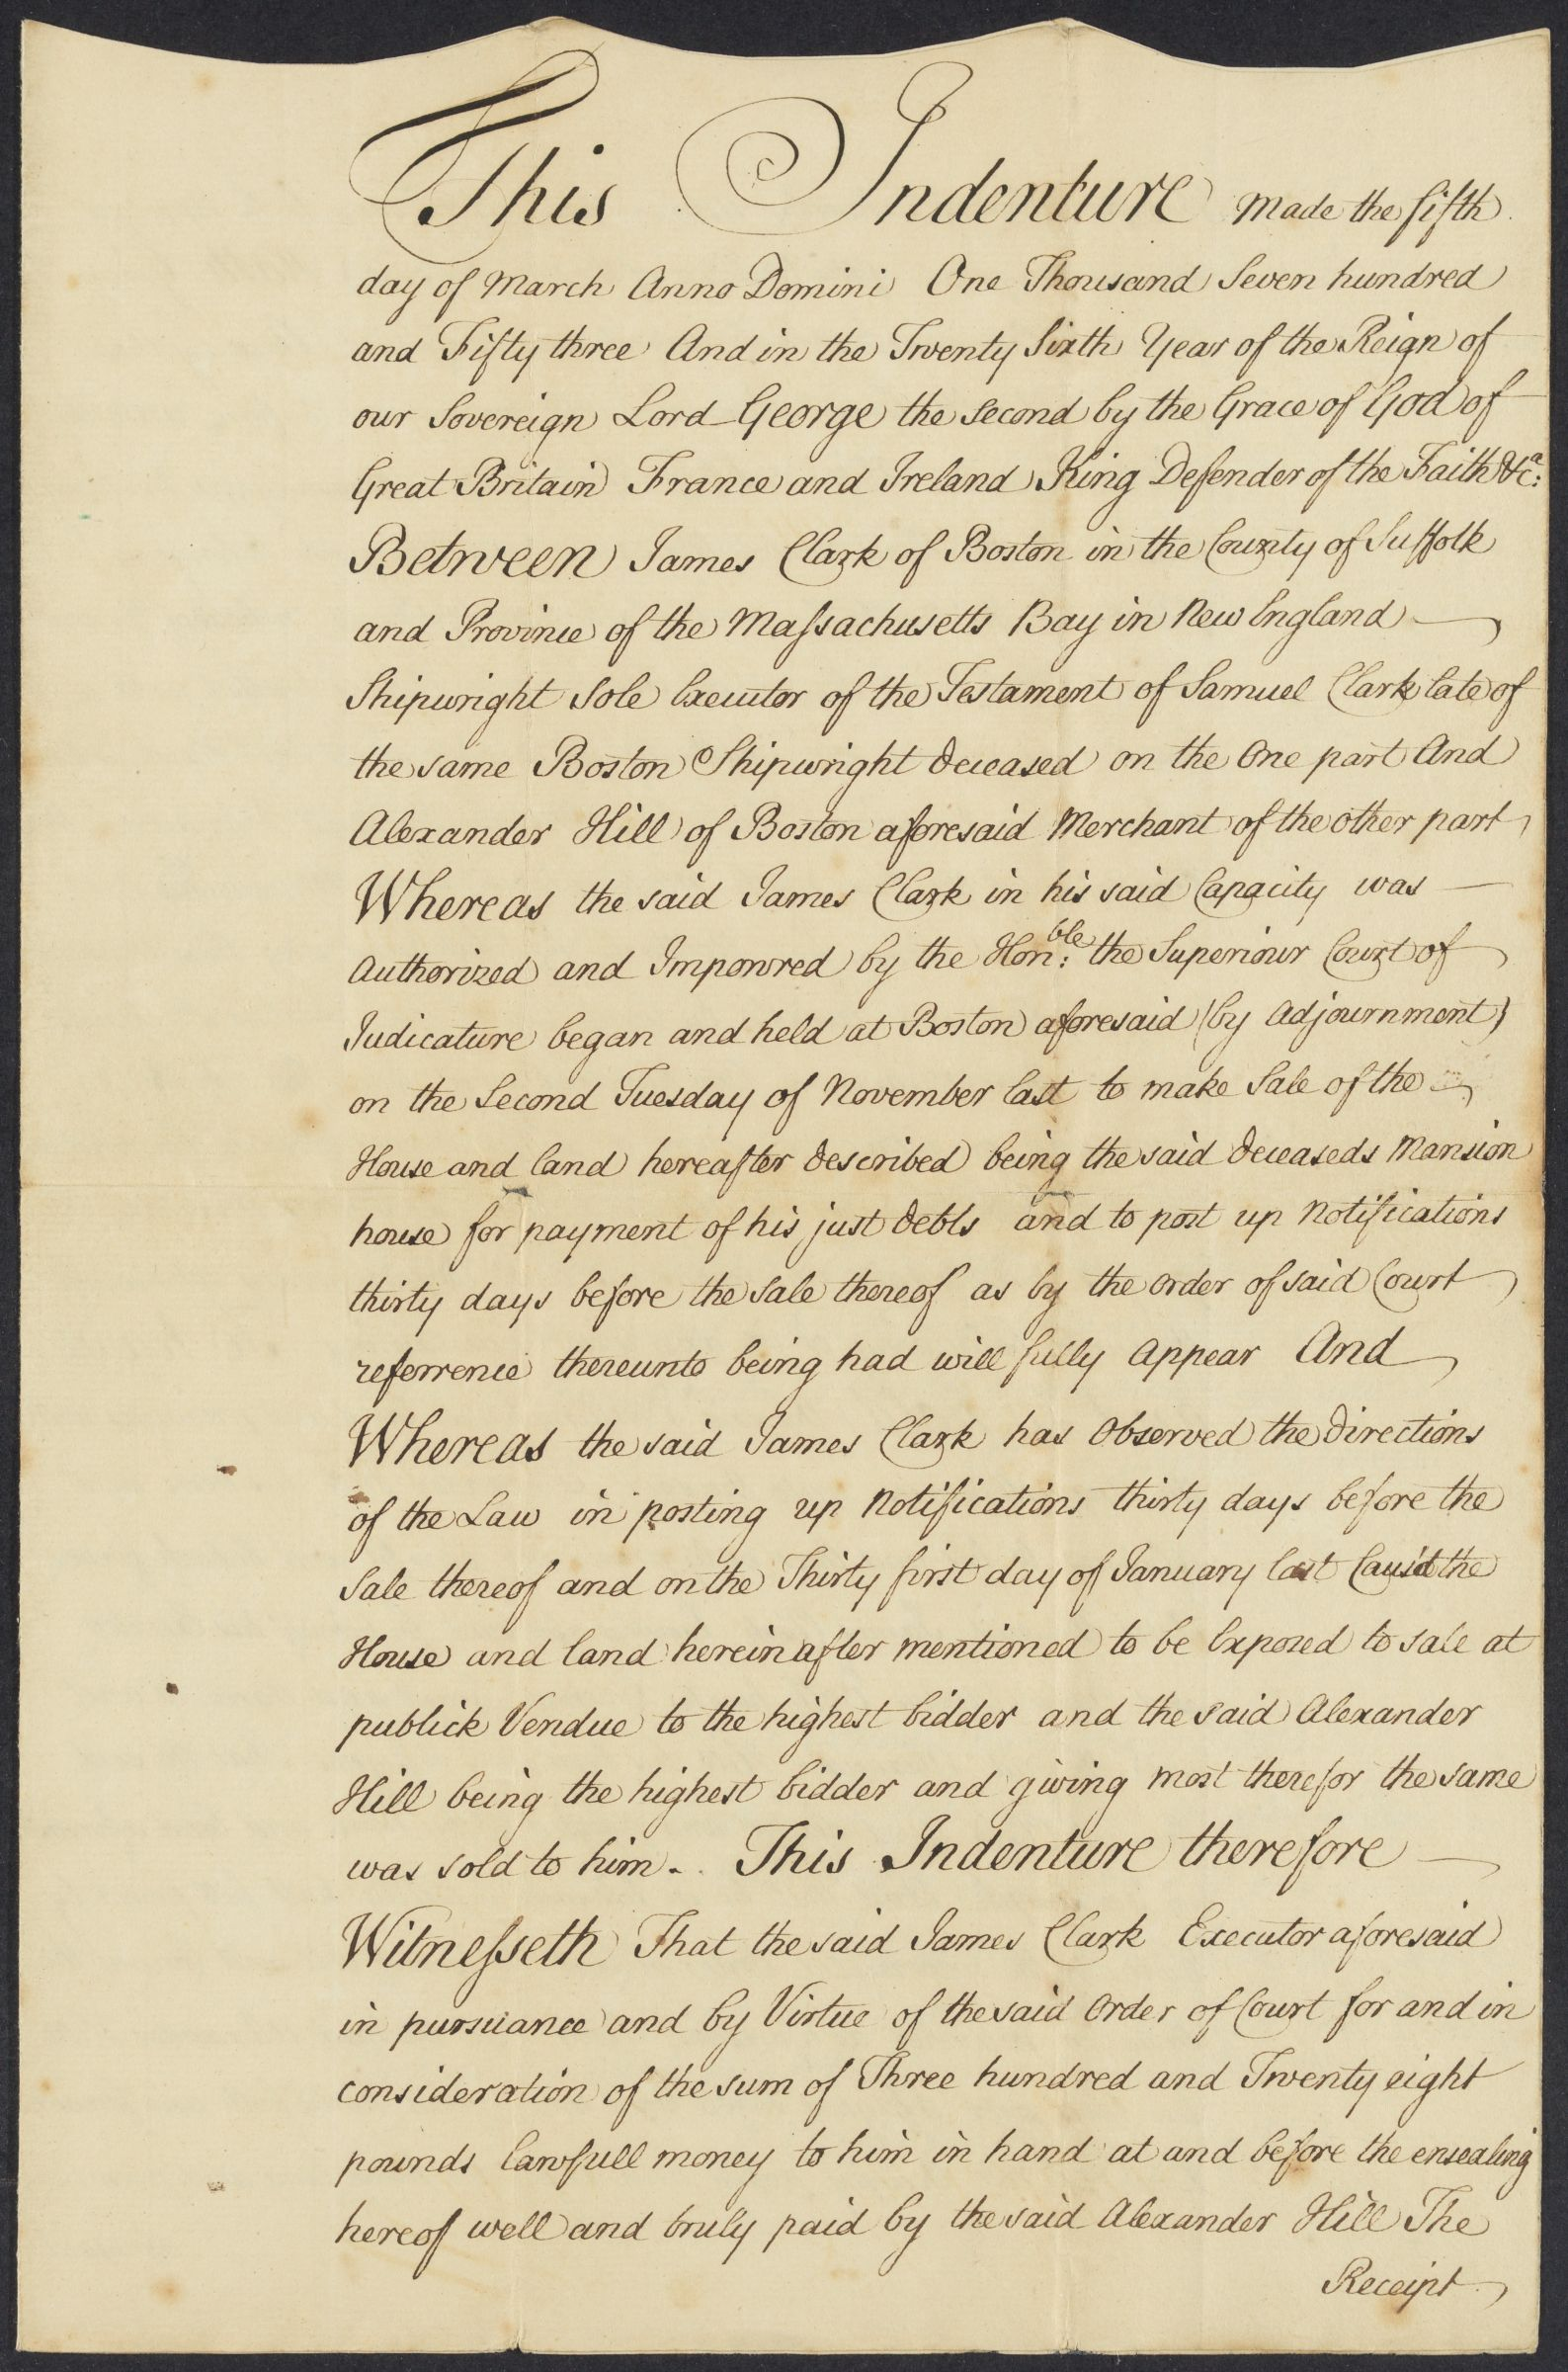 Indenture acknowledging sale of property, Boston, 1753